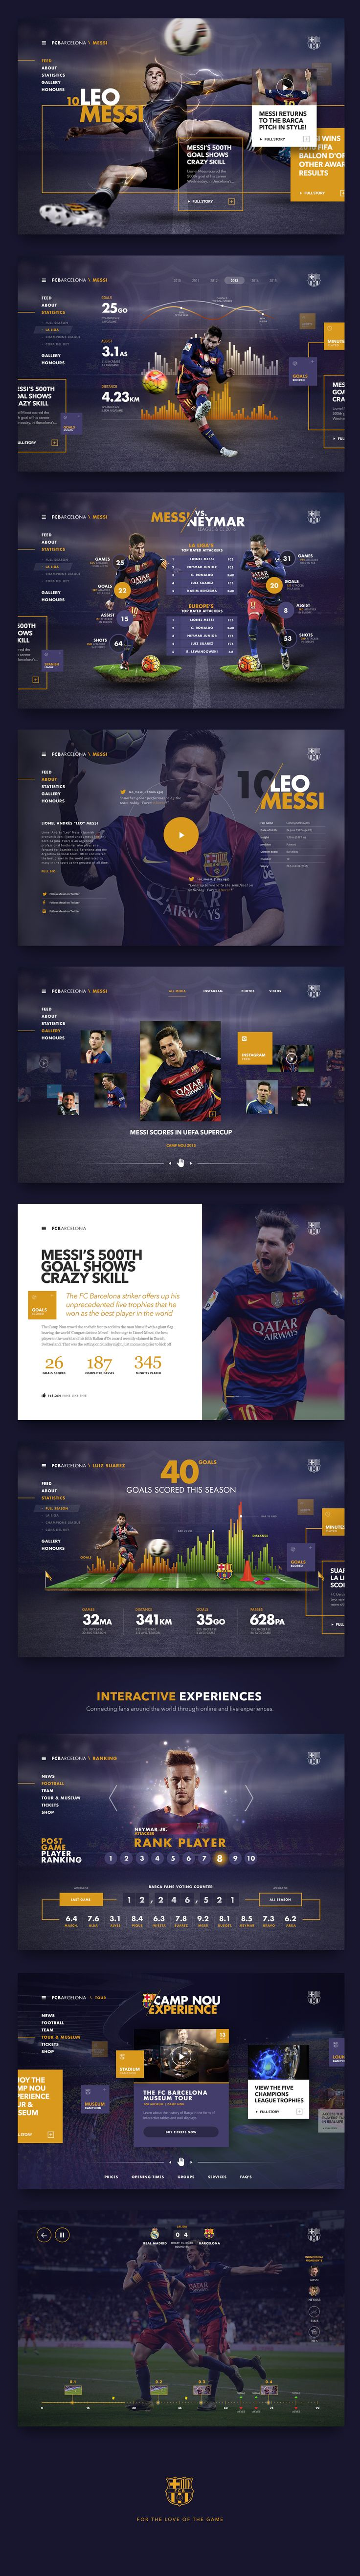 FC Barcelona design by Fred Nerby…